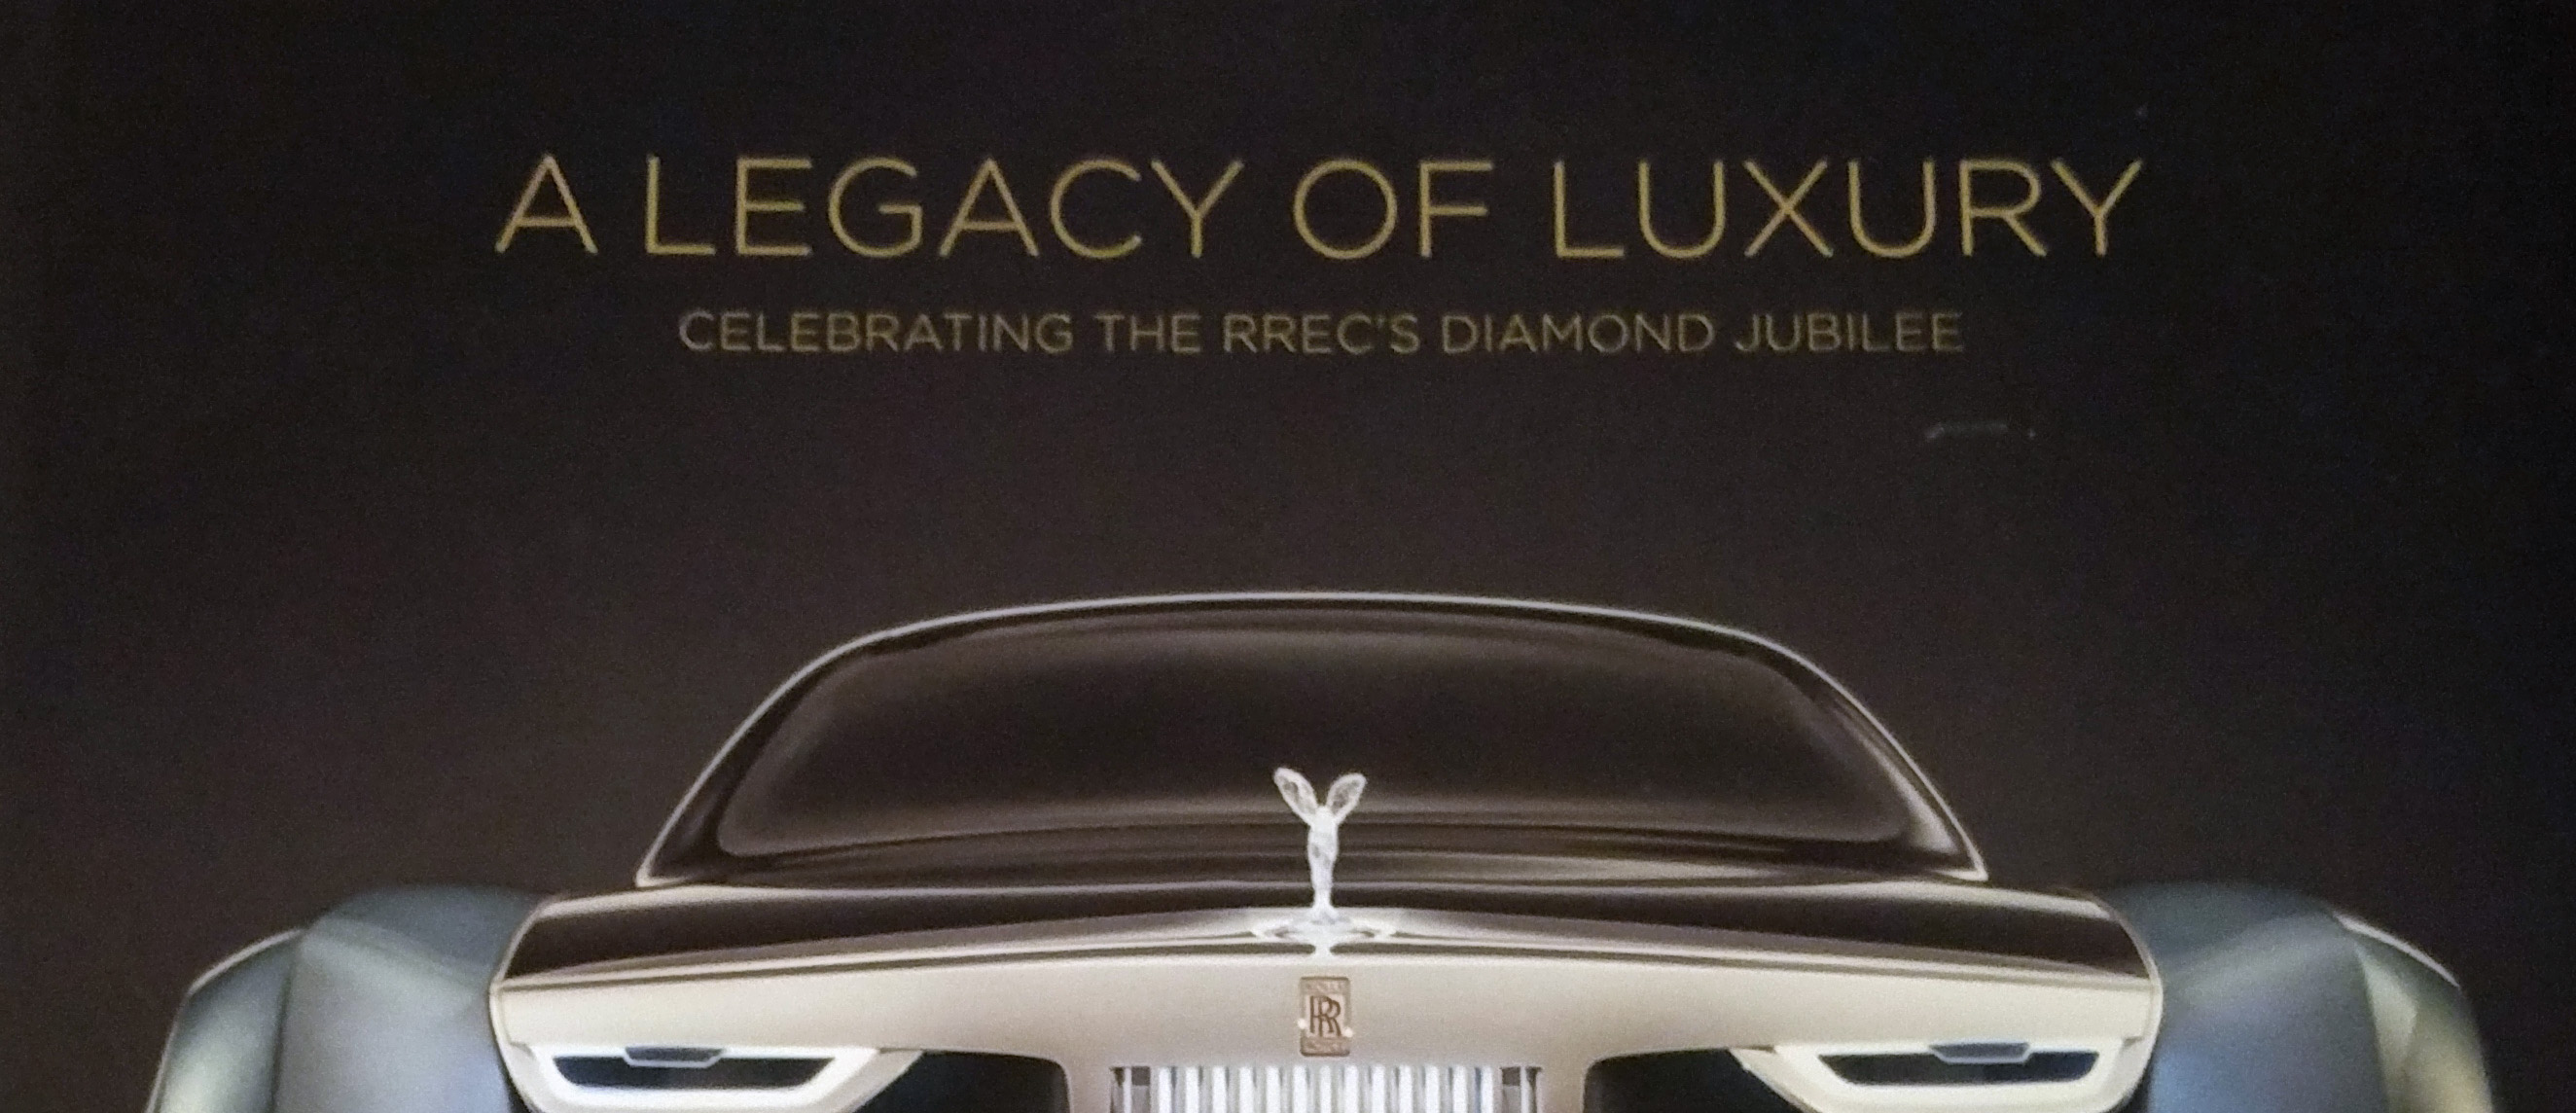 Royal Eiderdown profiled in A Legacy of Luxury – Celebrating the RREC´s Diamond Jubilee